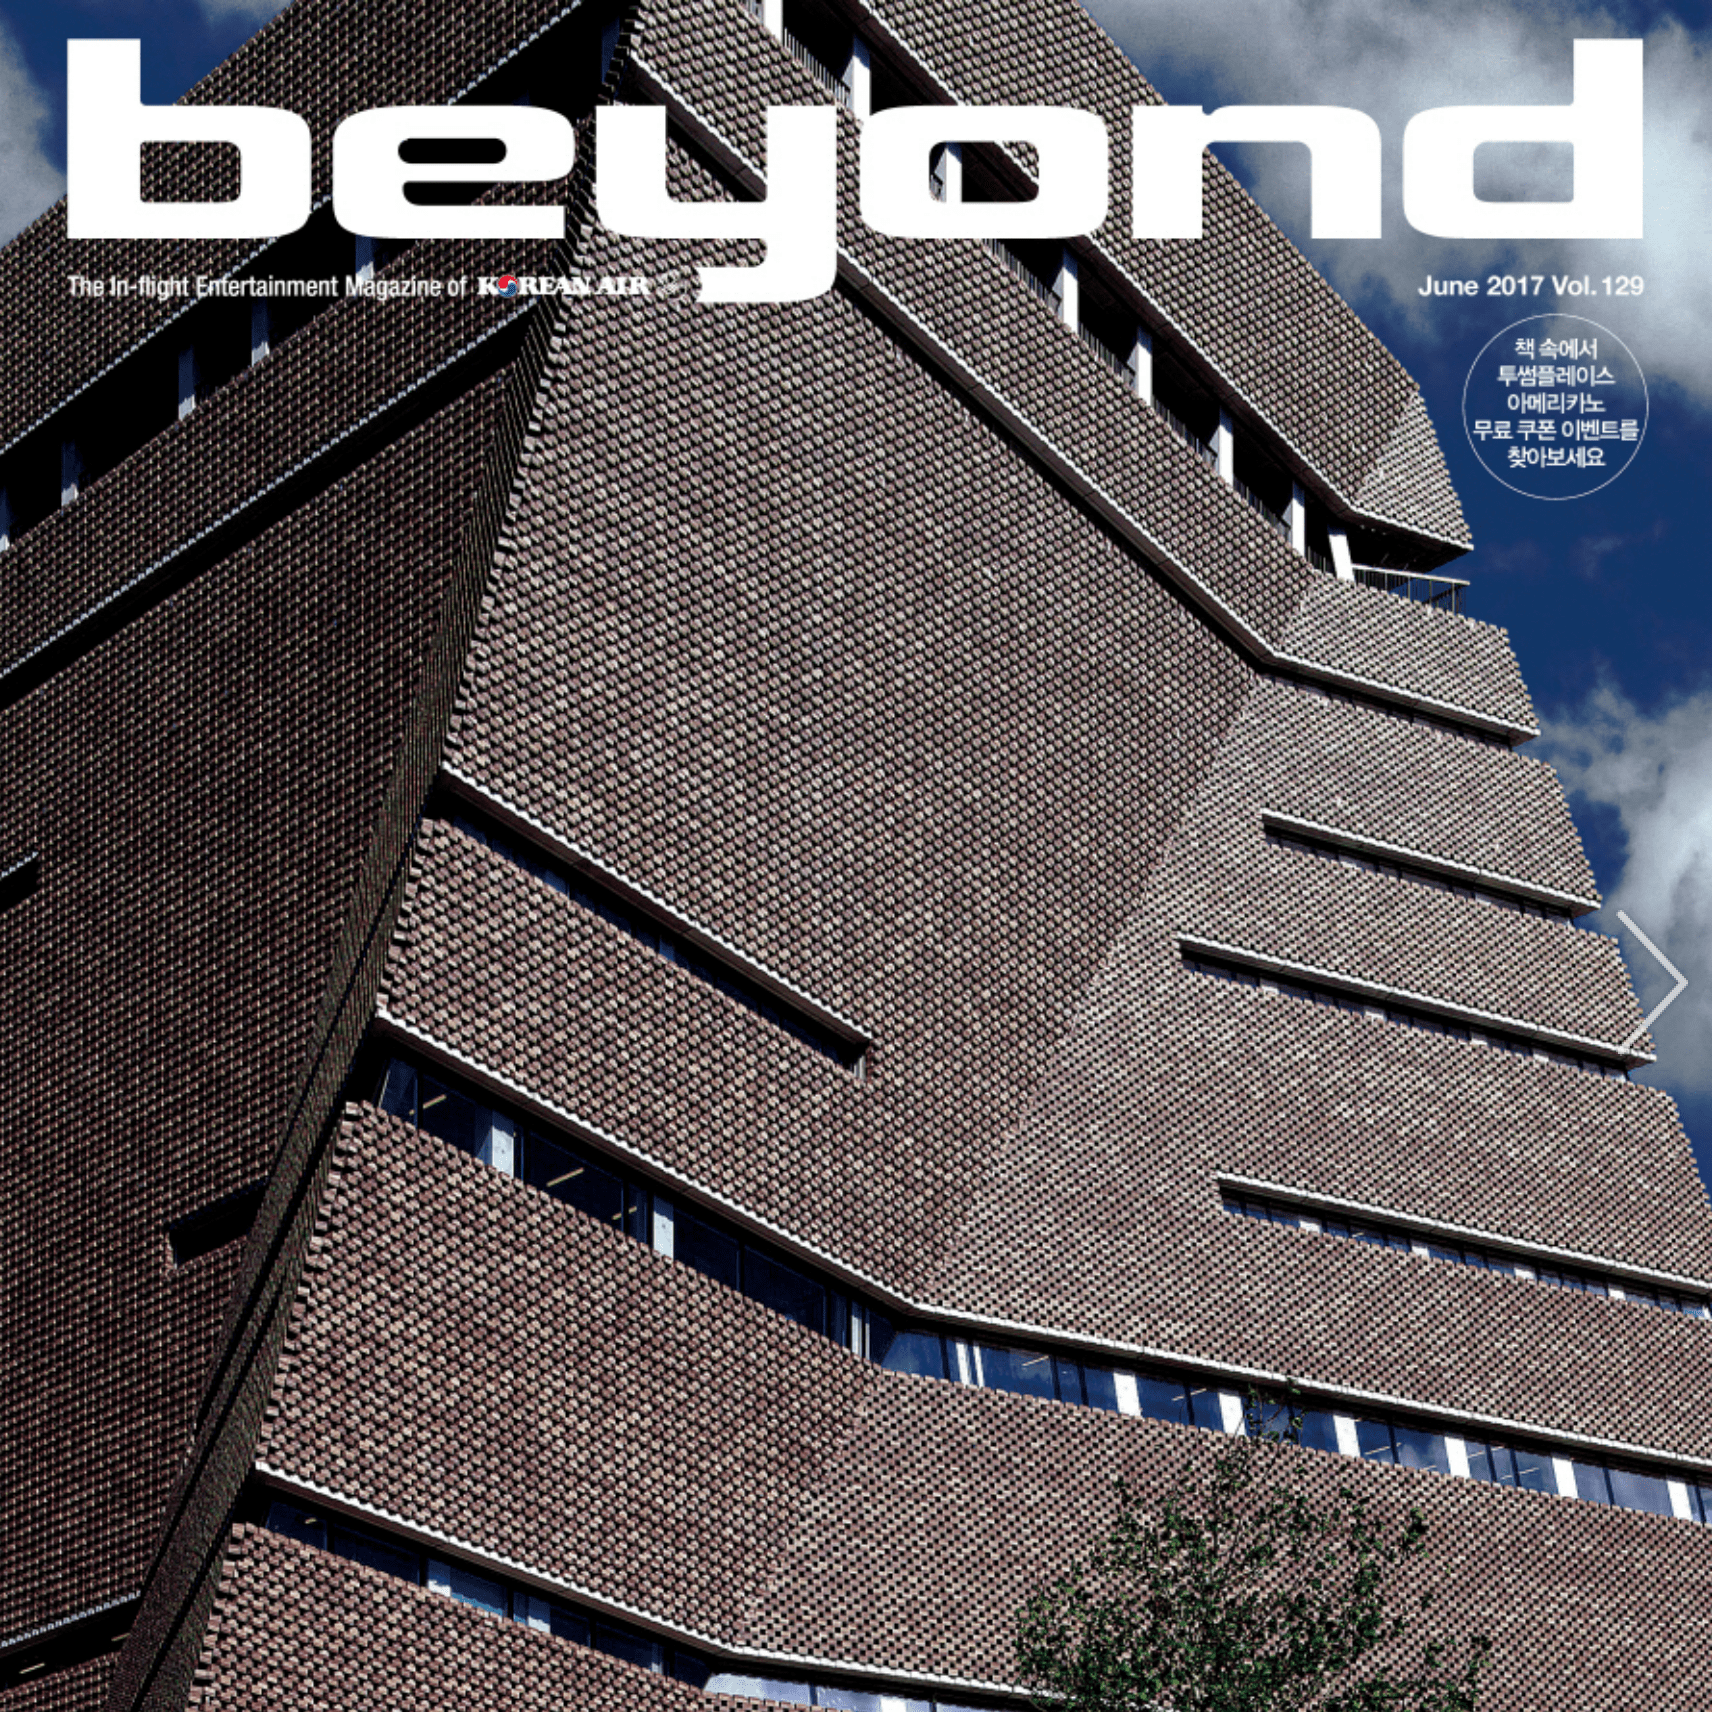 Beyond Vol. 129 - June 2017 - 116 pages